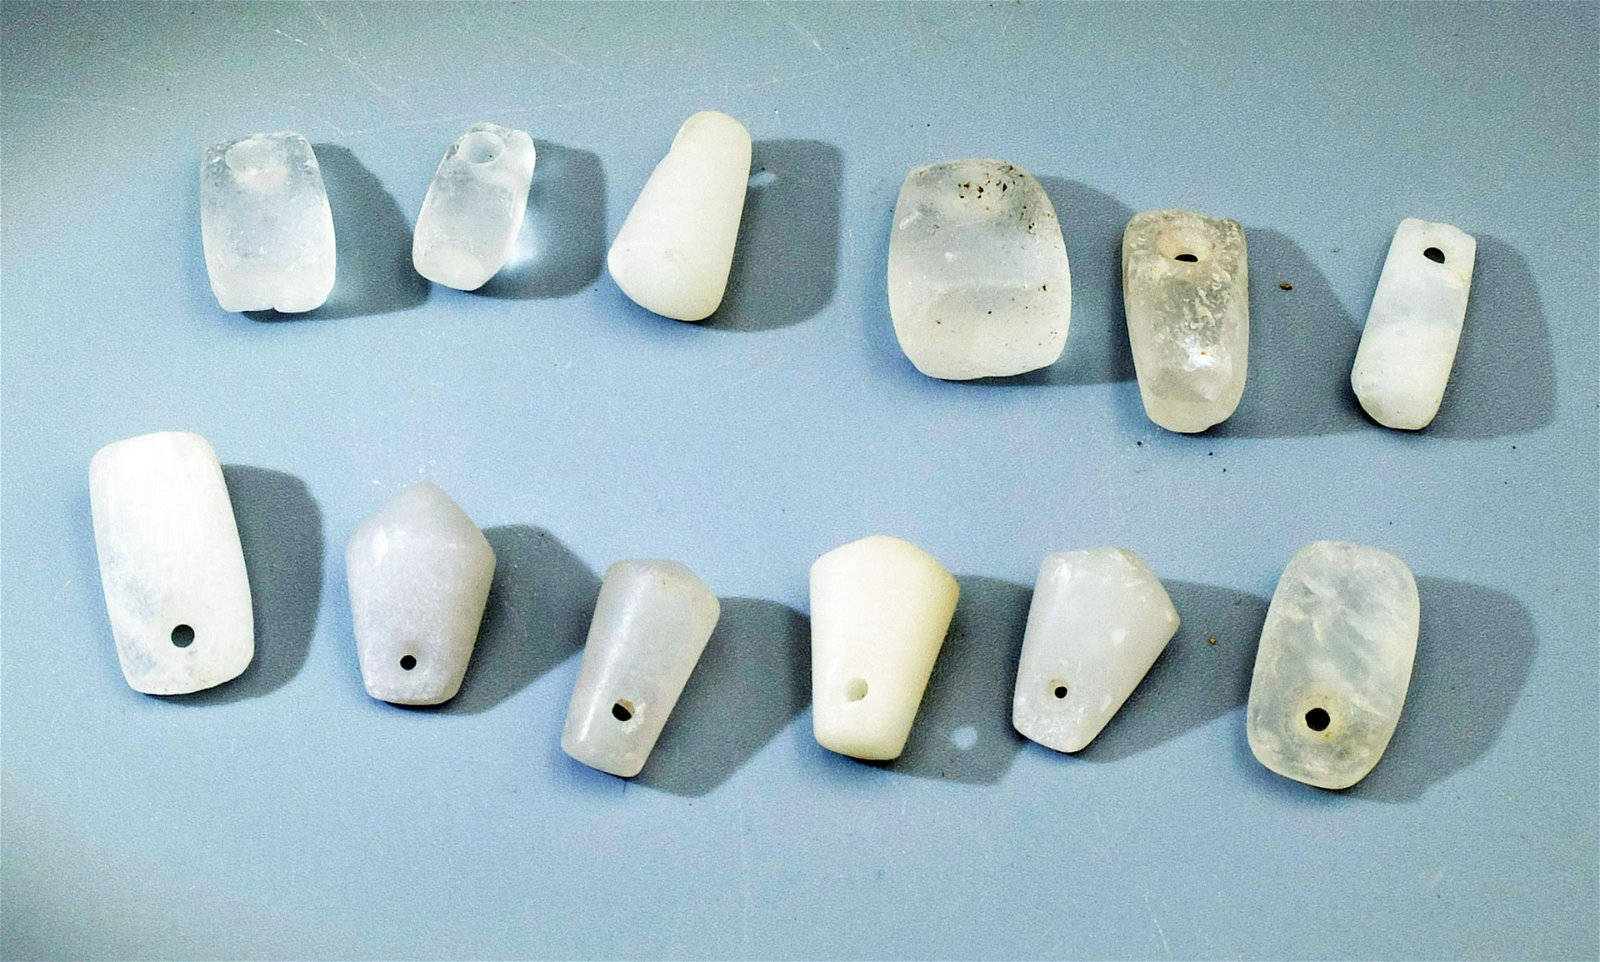 Group of 12 Tairona crystal pendants from Colombia